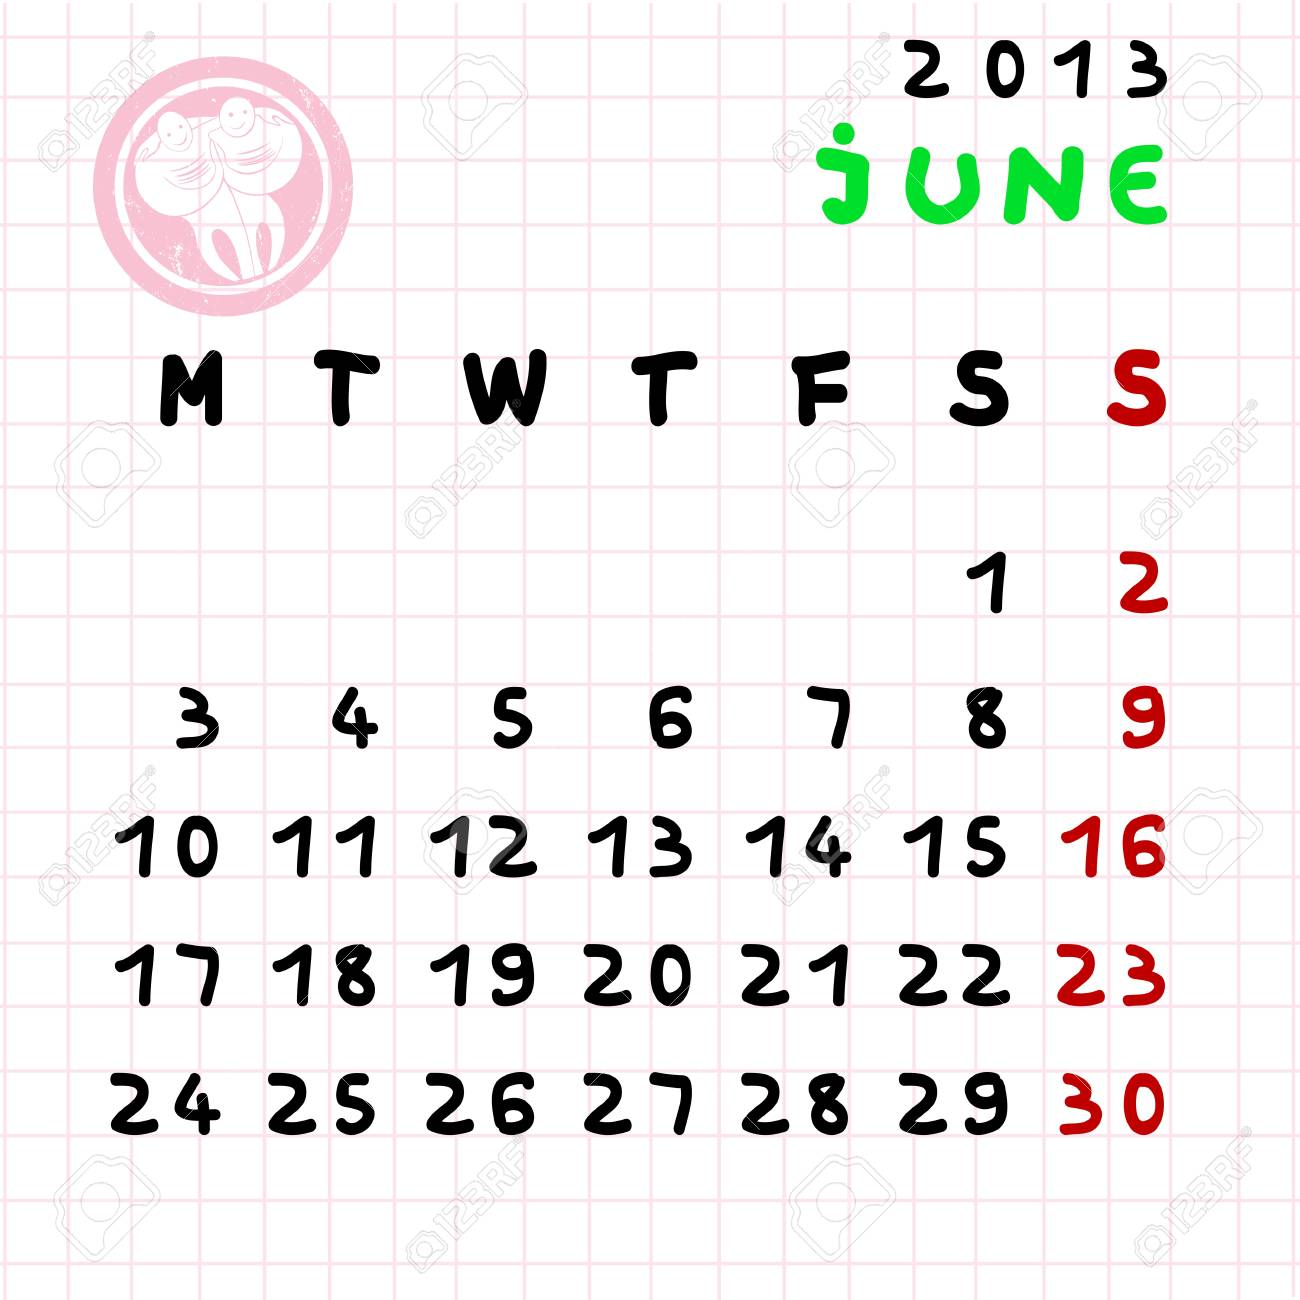 2013 Monthly Calendar June With Gemini Zodiac Sign Stamp Royalty